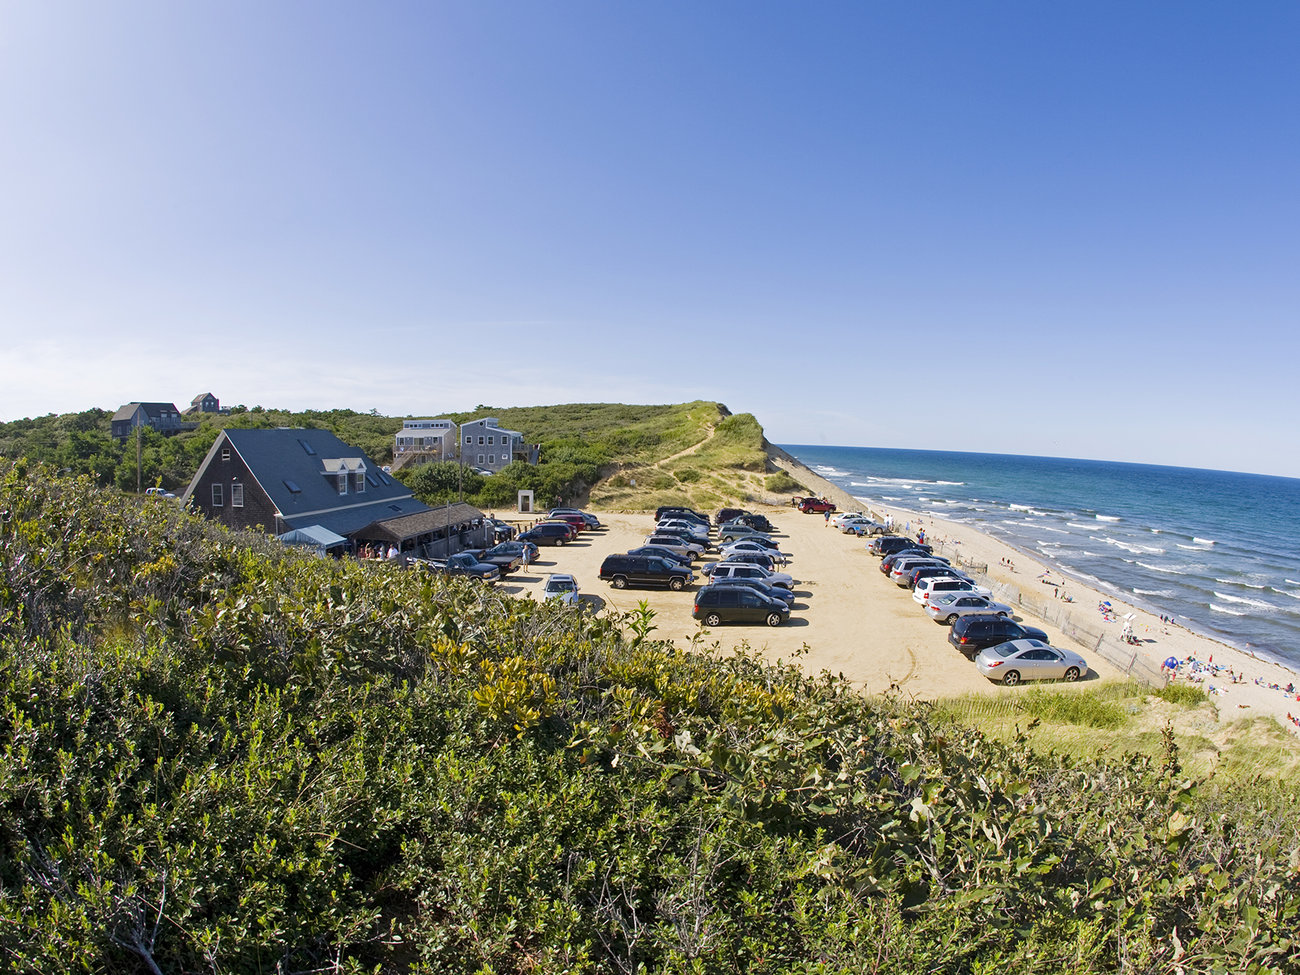 The Beachcomber Bar in Cape Cod